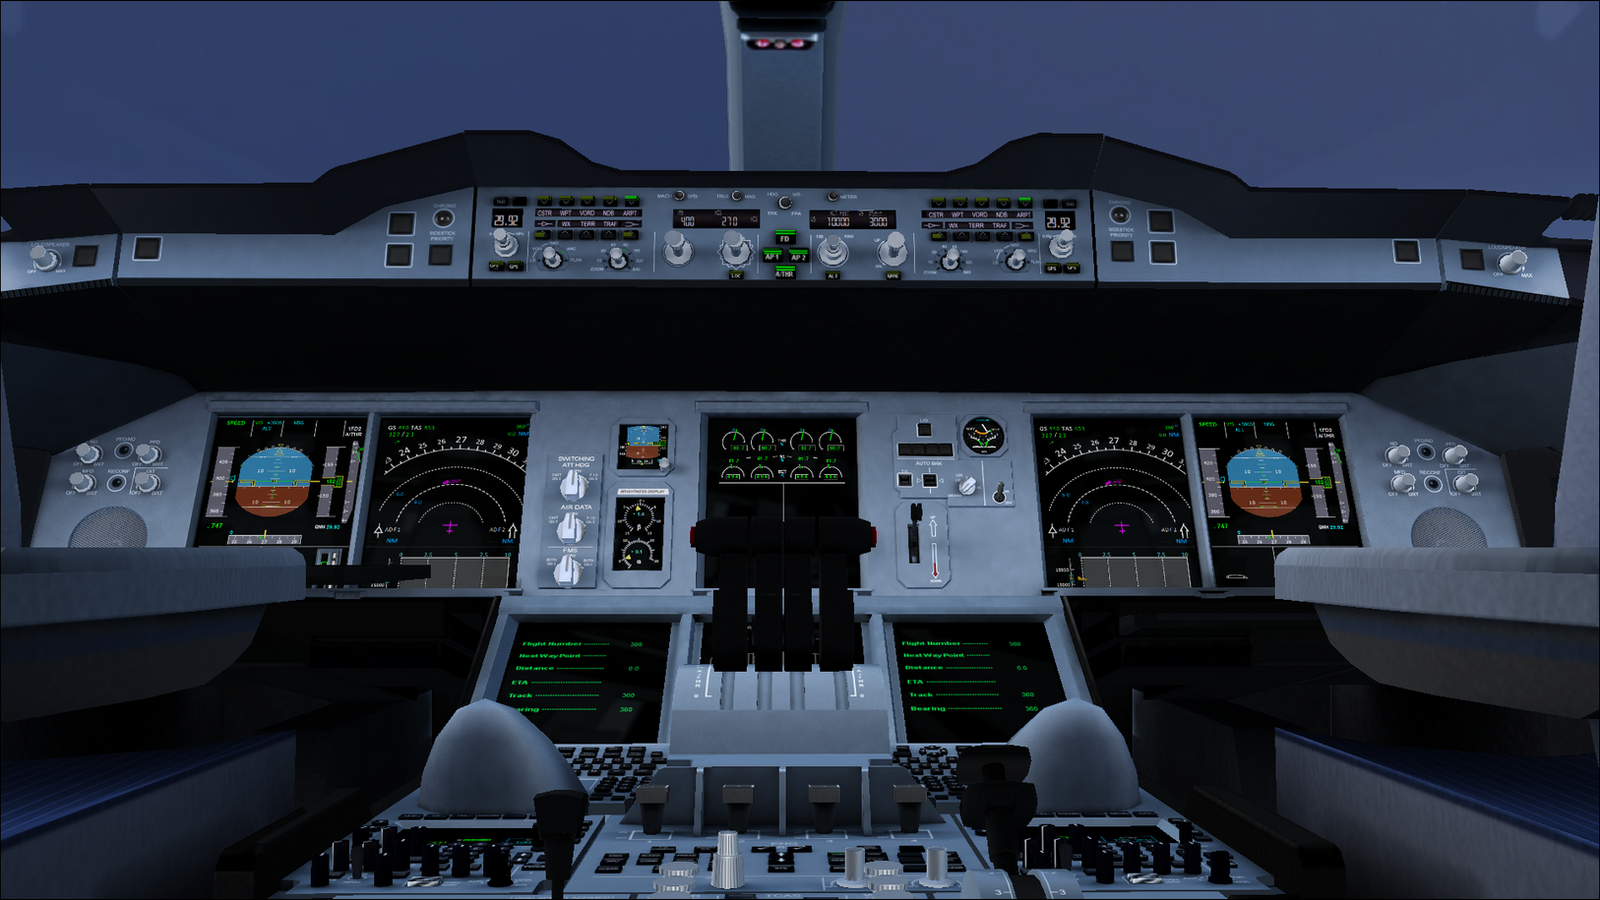 airbus a380 project Lufthansa airbus a380-800 the project airbus a380-800 with dynamic wing flex, accurate laf simulation, parallel bogies, drooping control surfaces,.